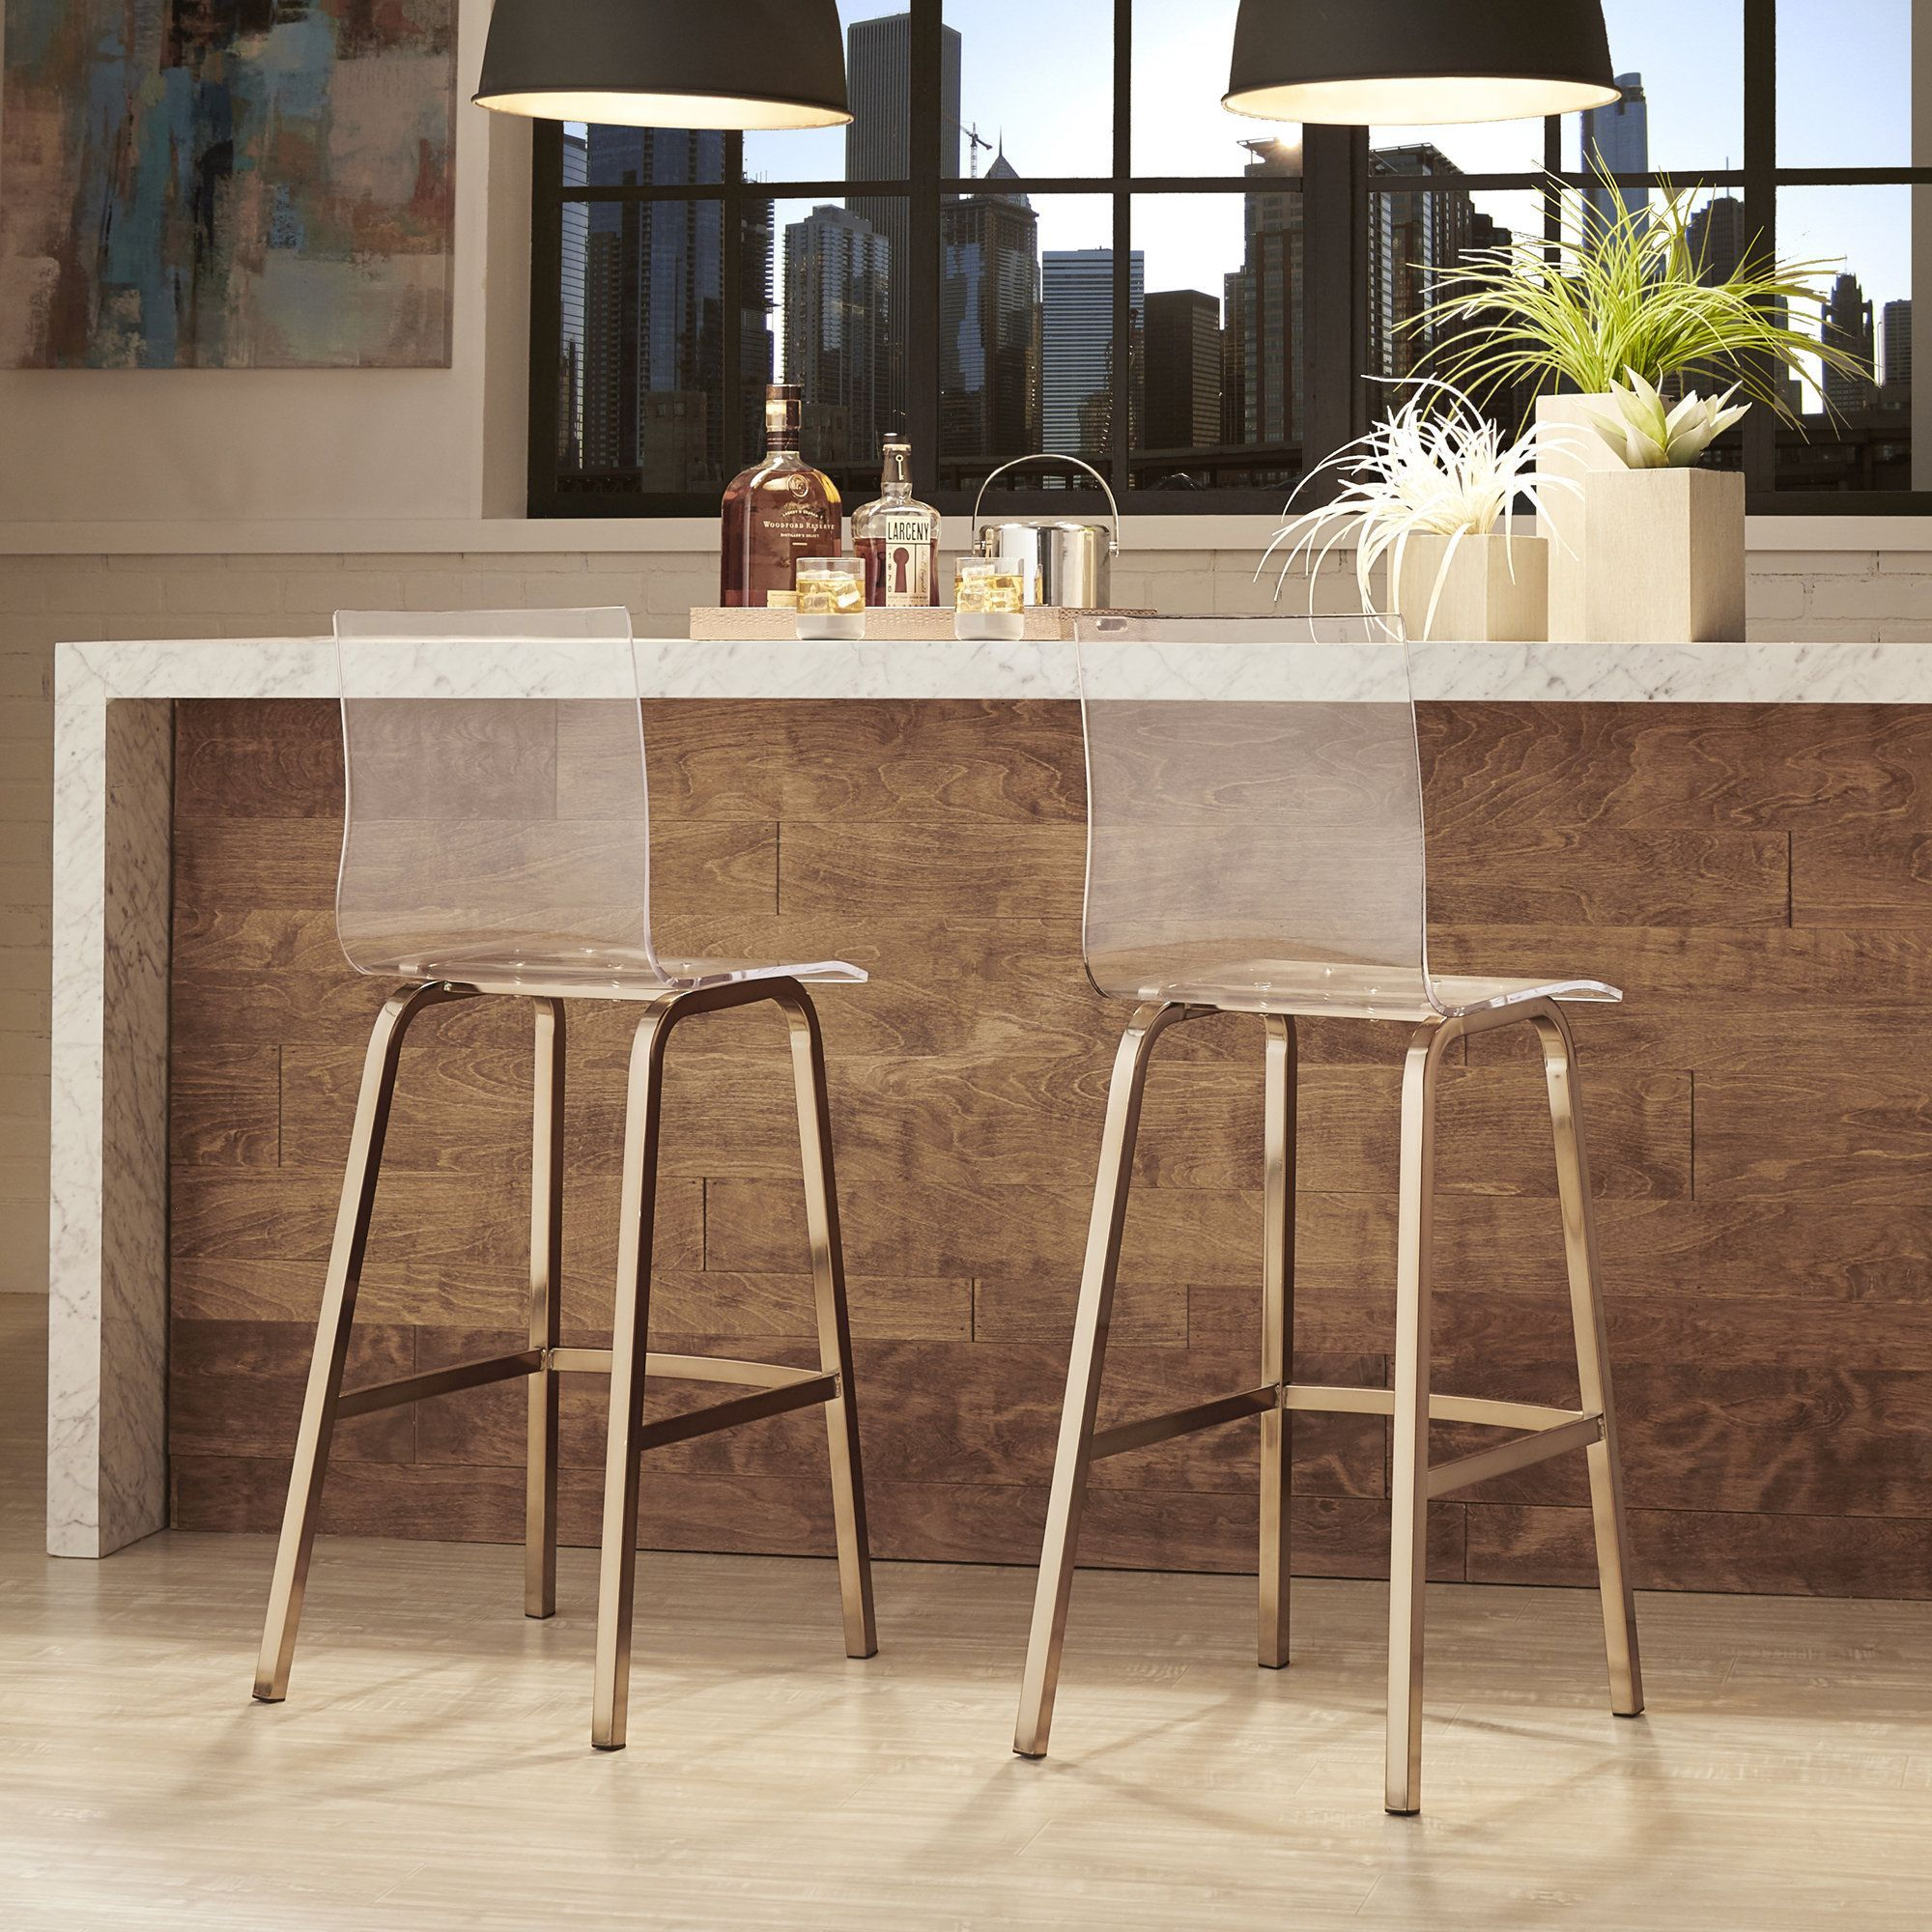 Inspire Q Miles Acrylic Swivel Bar Stools With Back Products Rh Pinterest Com